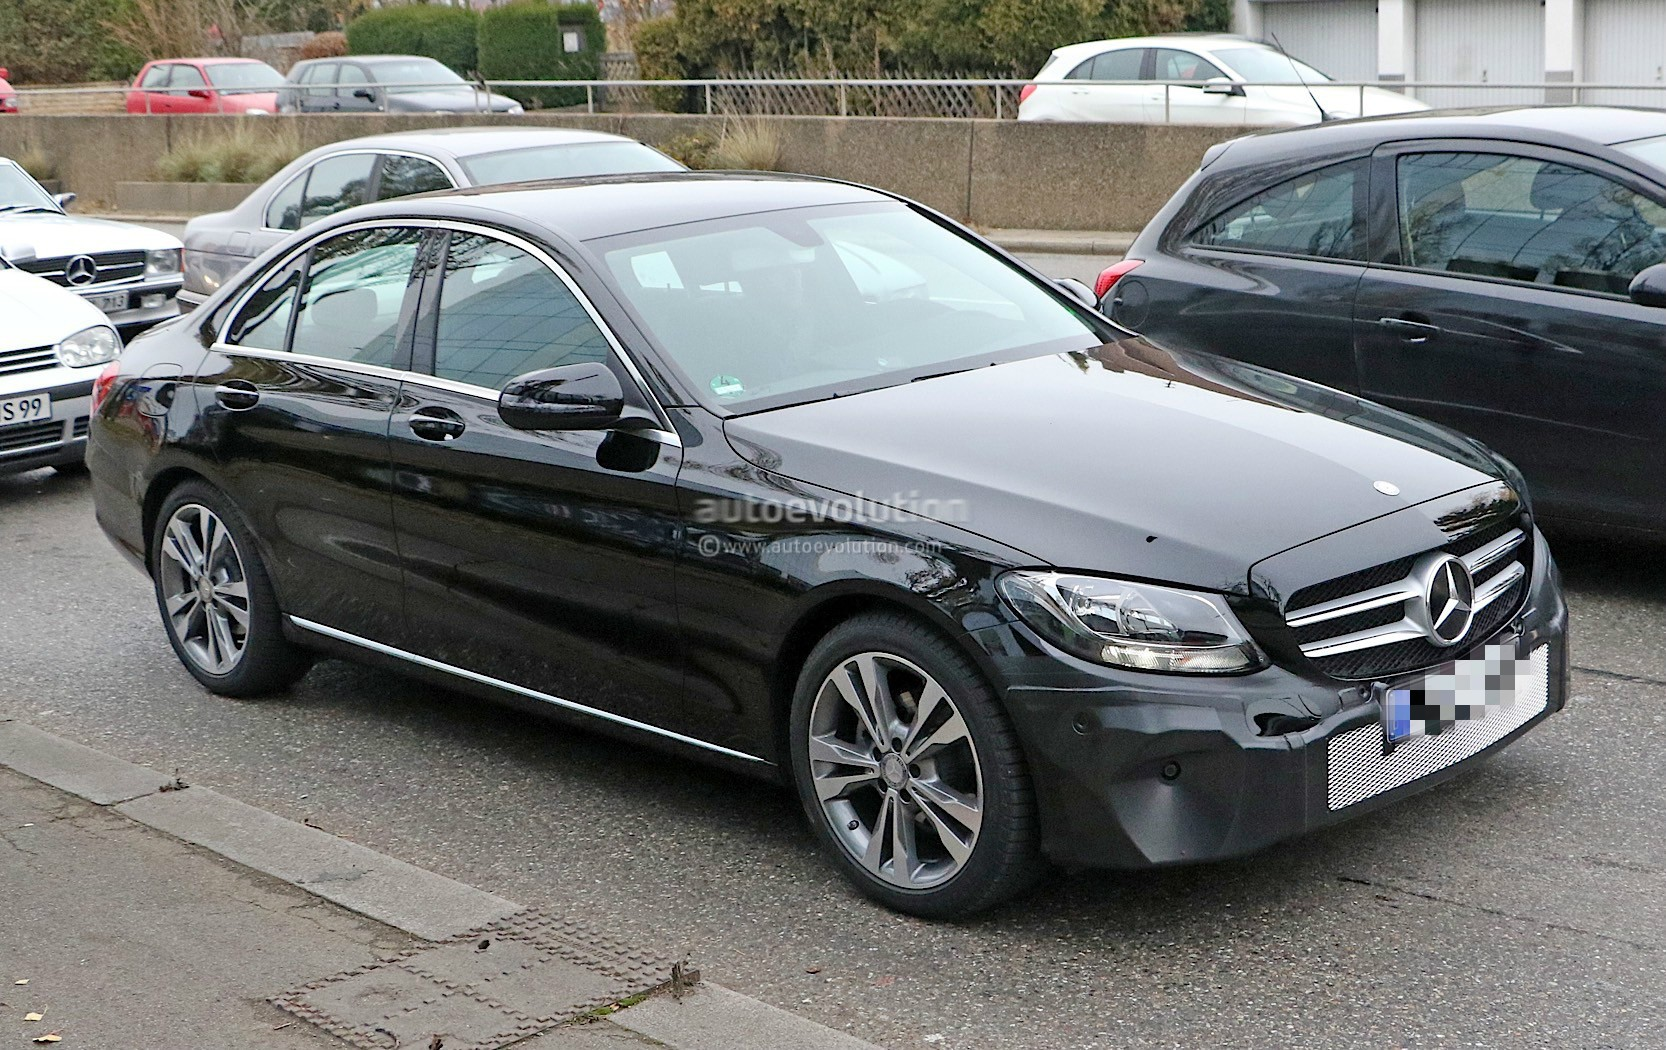 2018 mercedes benz c class facelift shows interior for the for Mercedes benz c classes